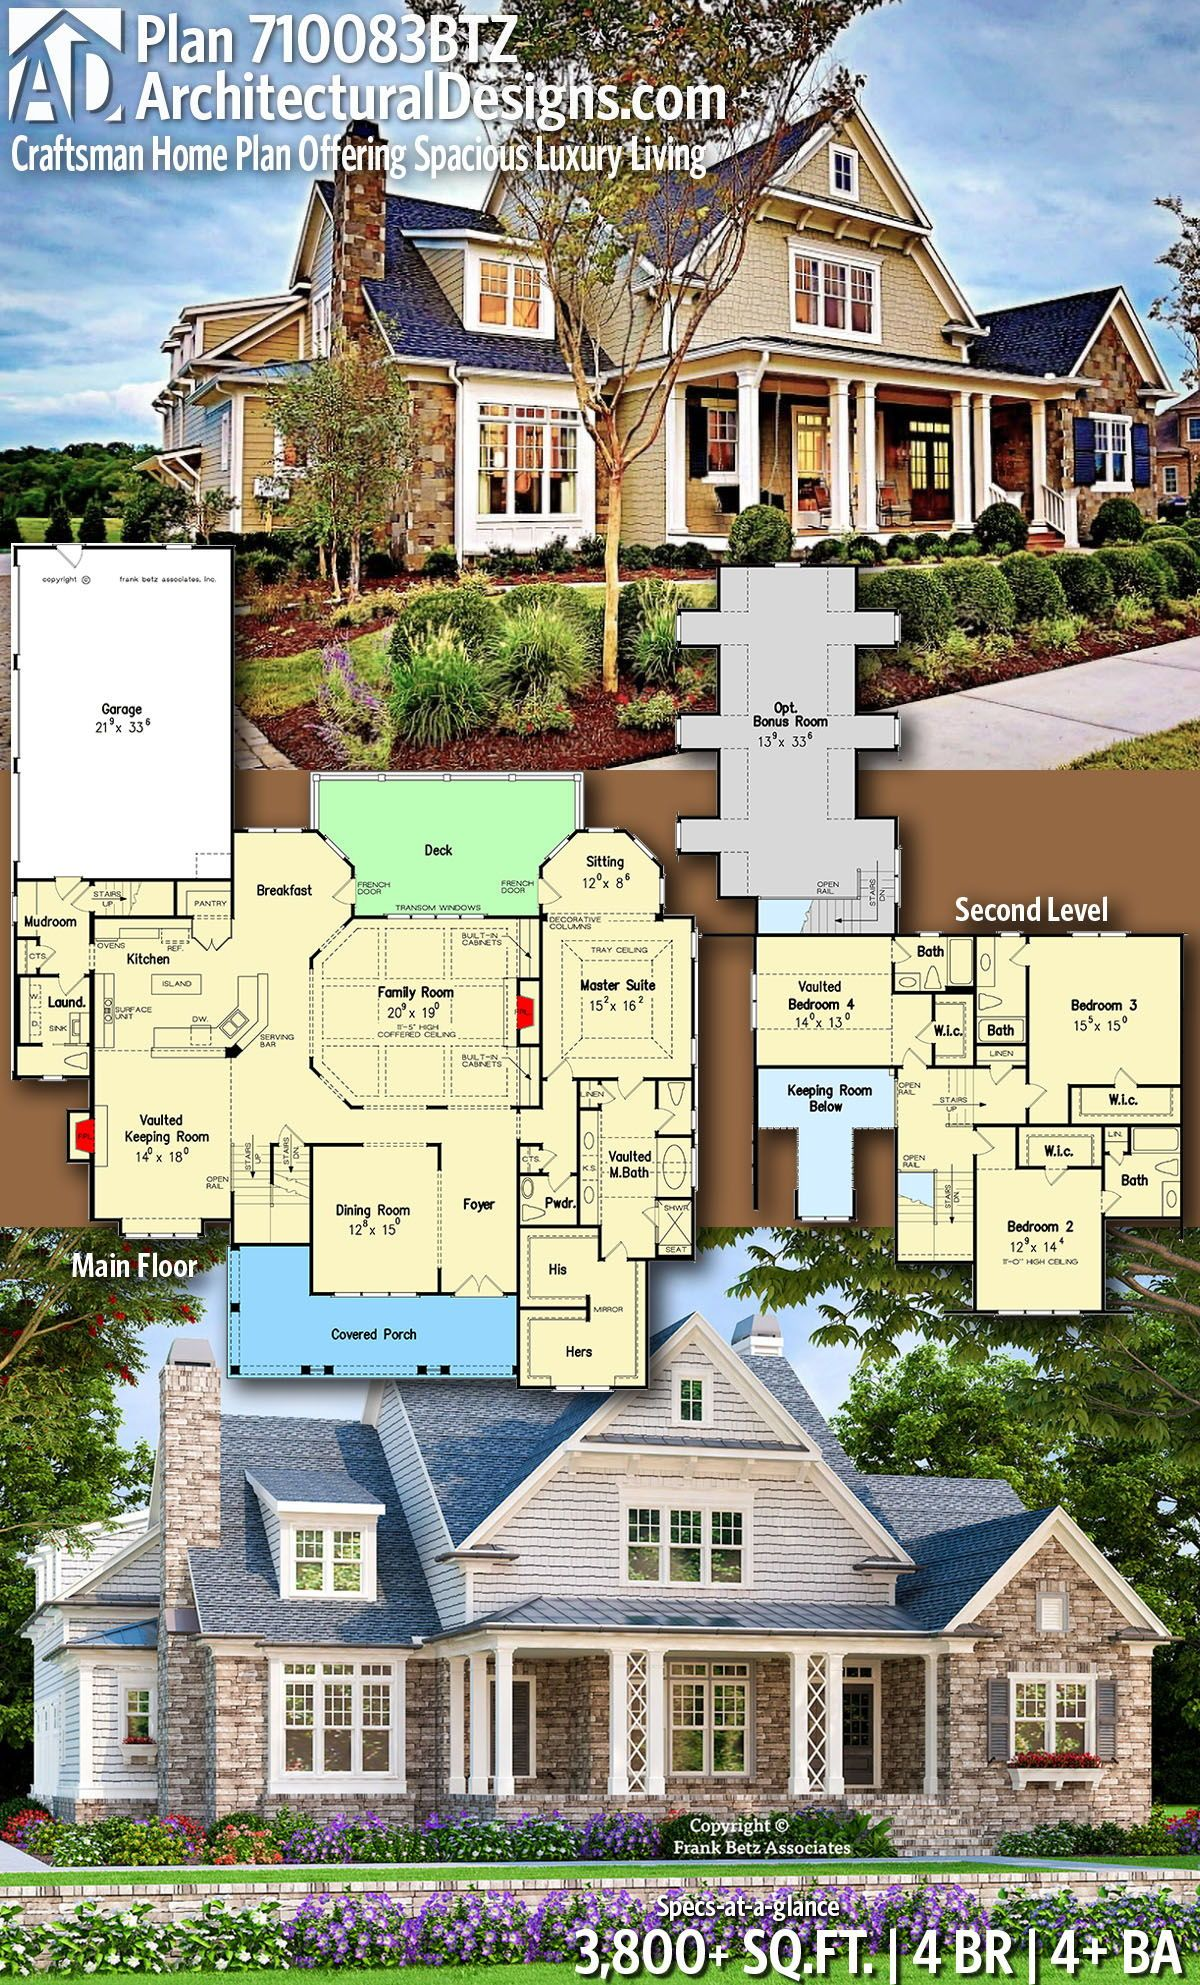 Architectural designs home plan btz gives you bedrooms baths and sq ft ready when are where do want to build also house plans archdesigns on pinterest rh